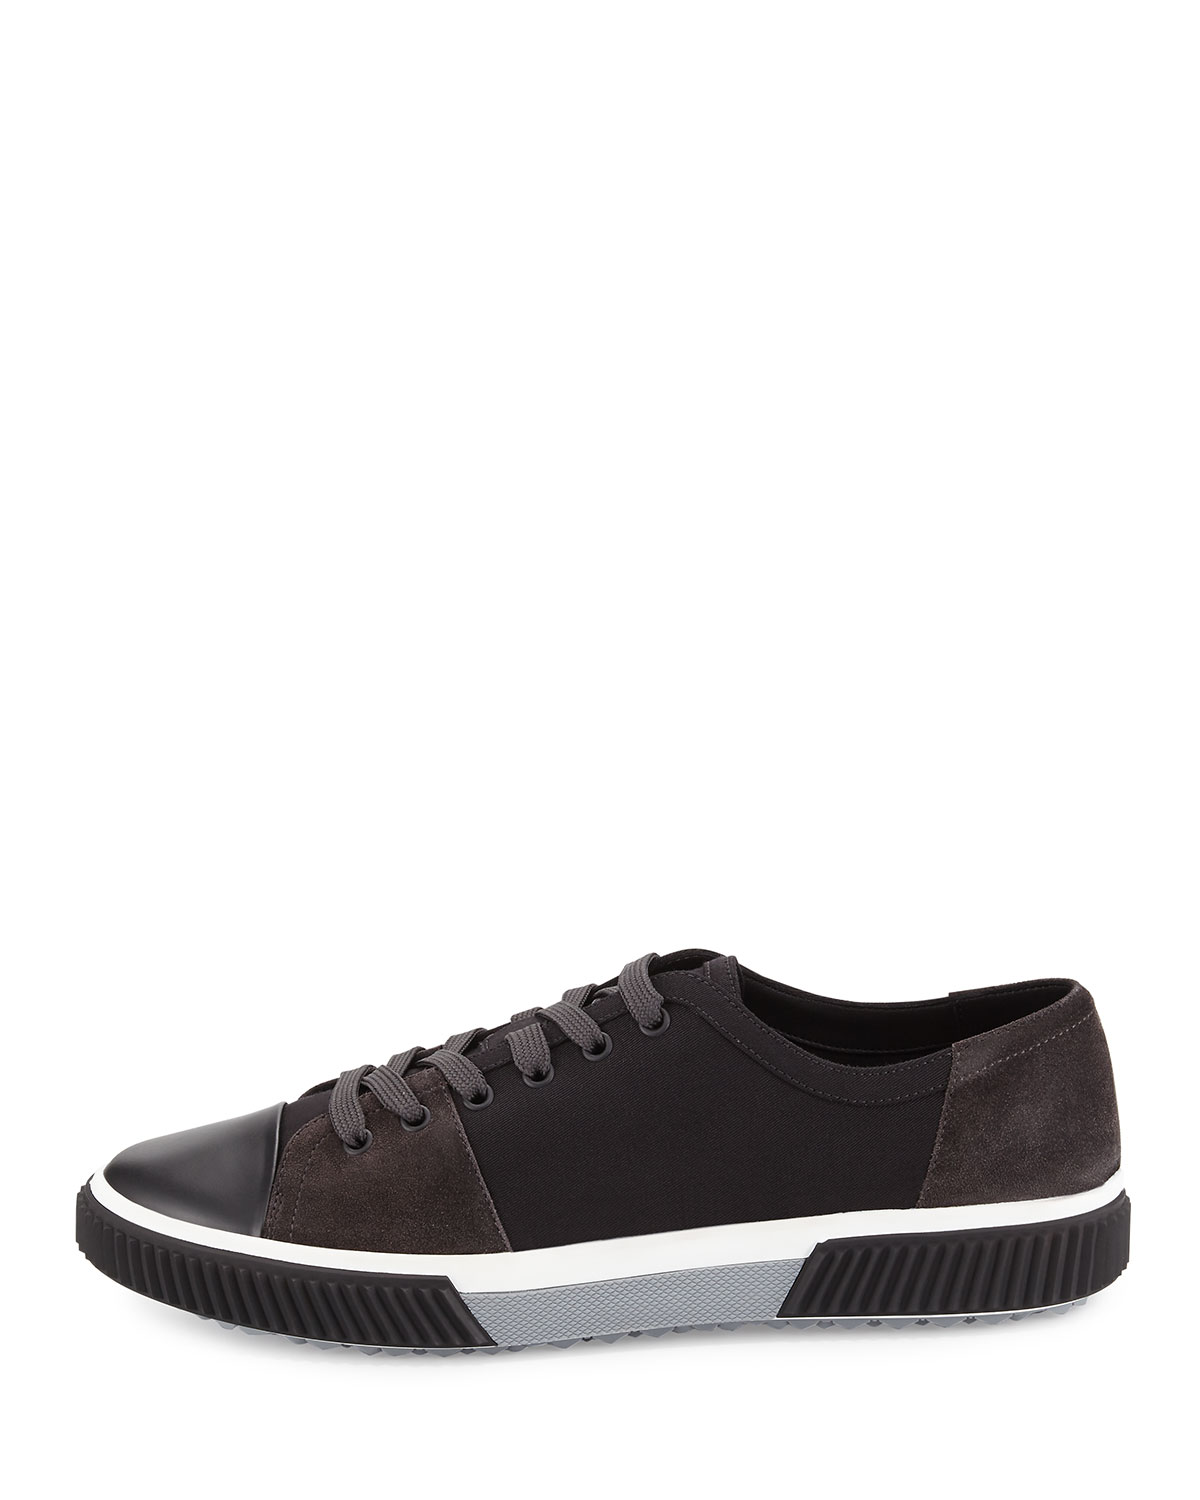 Prada Black Suede & Canvas Sneakers 0GEZ4QQx